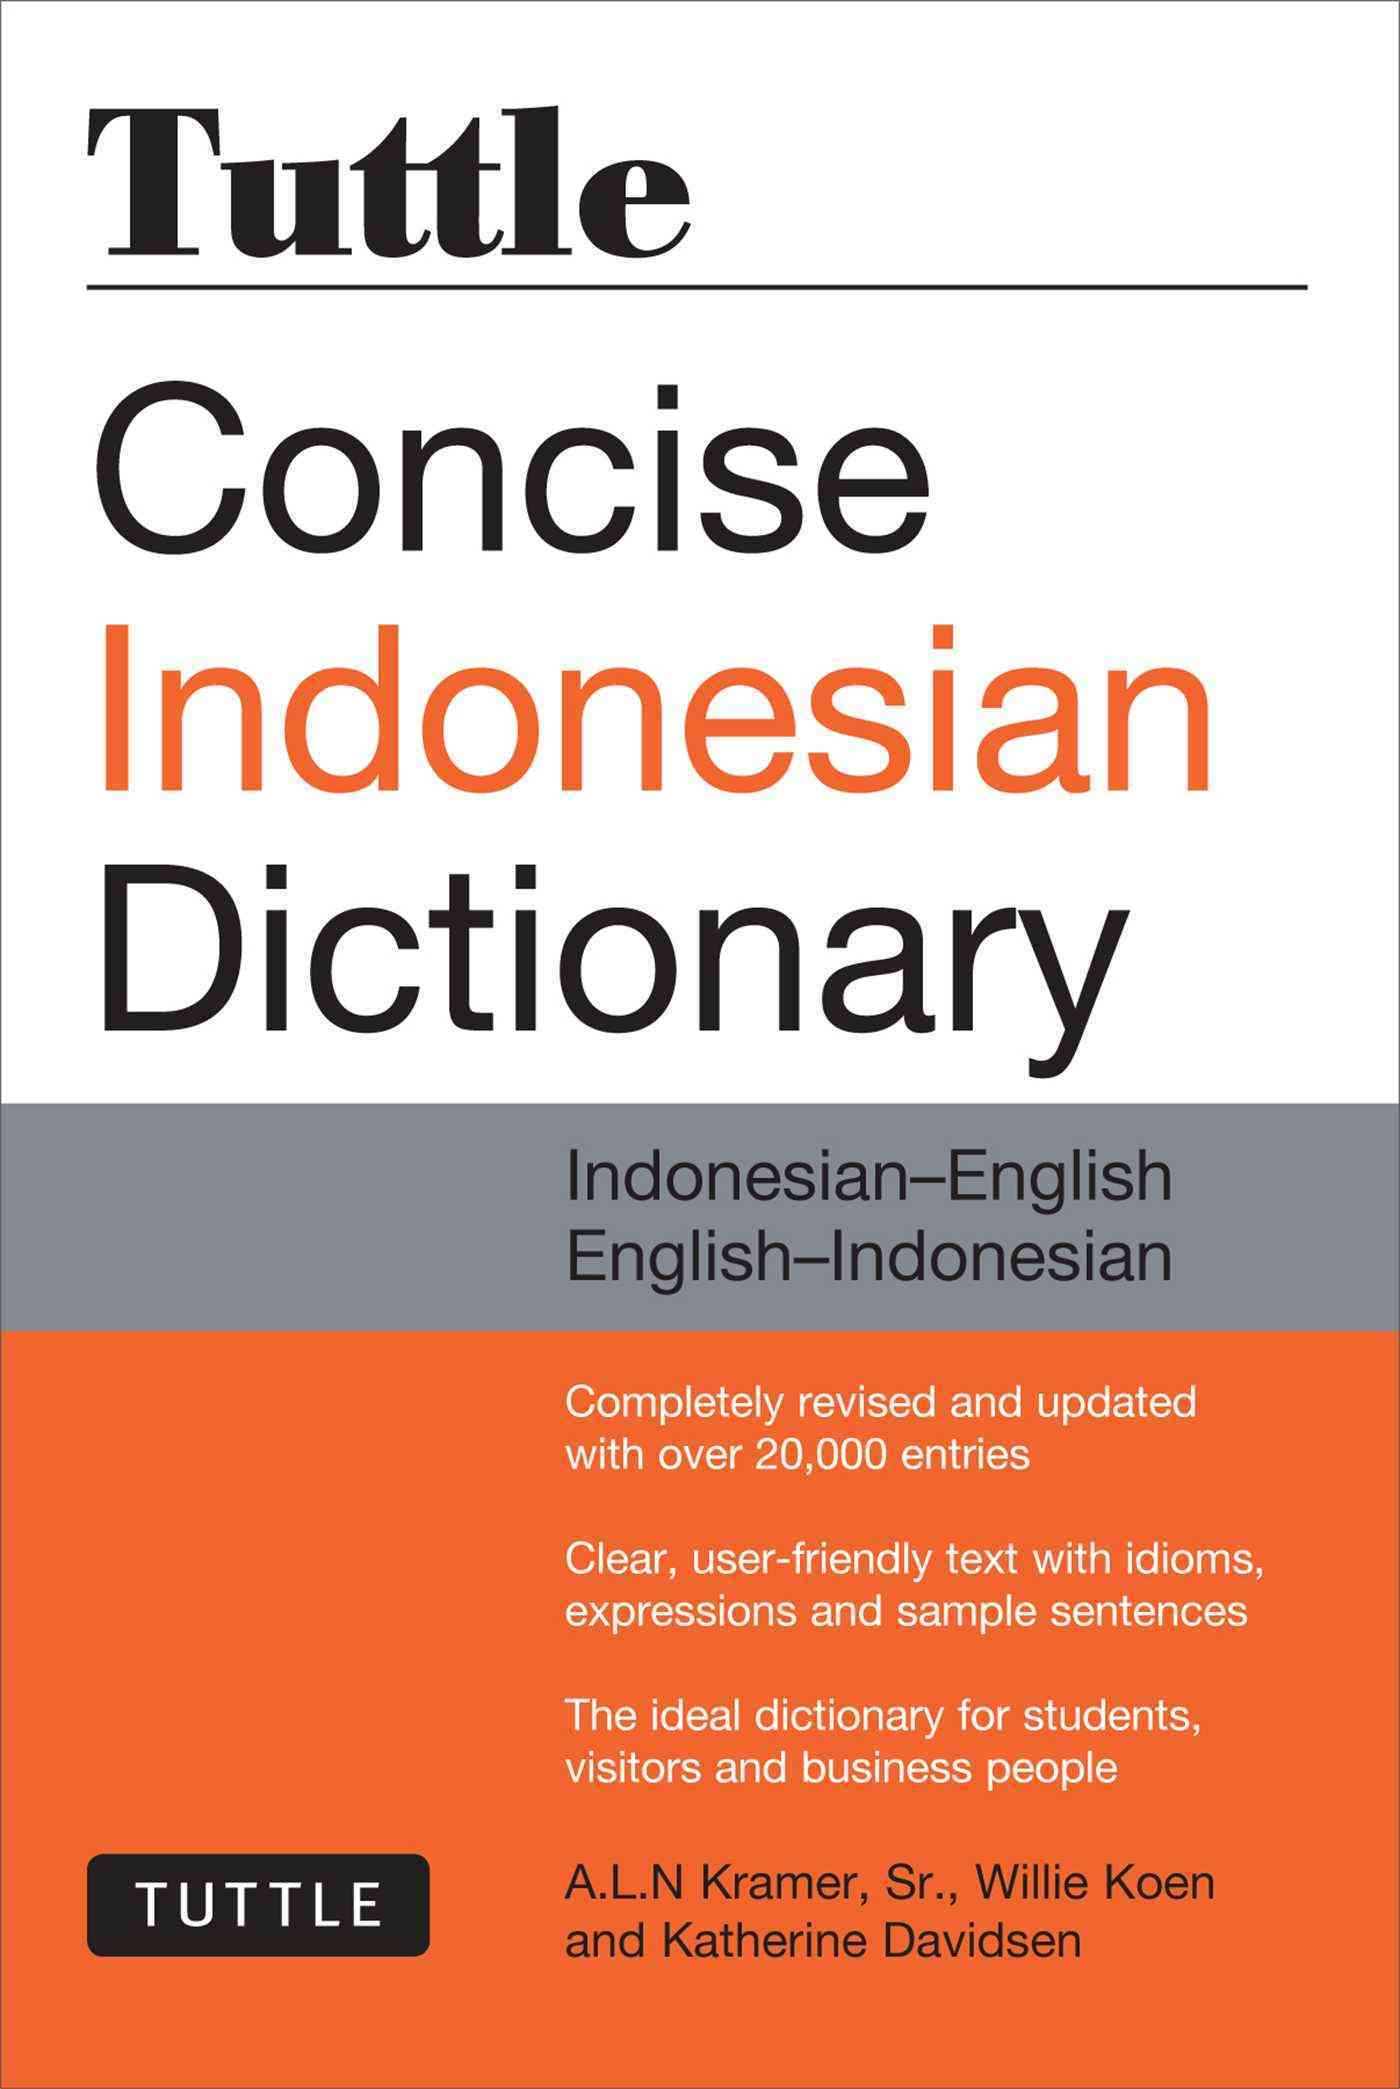 Tuttle Concise Indonesian Dictionary By Kramer, A. L. N./ Koen, Willie/ Davidsen, Katherine